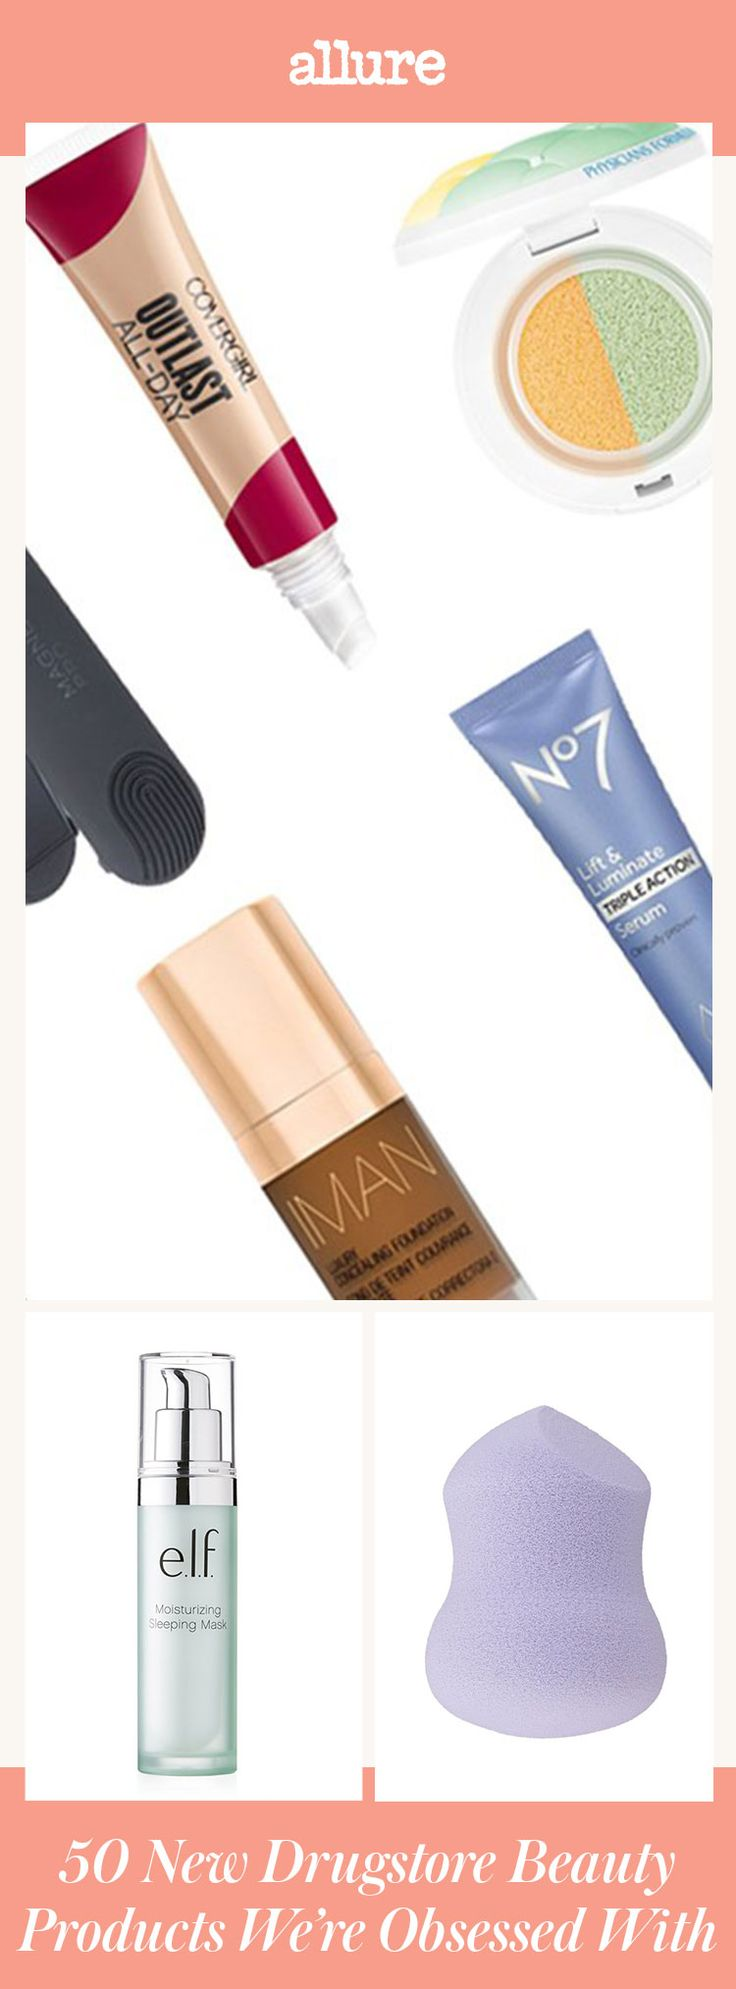 We swiped, spritzed, and tested all the launches to bring you the absolute best new drugstore foundations, mascara—you name it—that you just have to try this year.